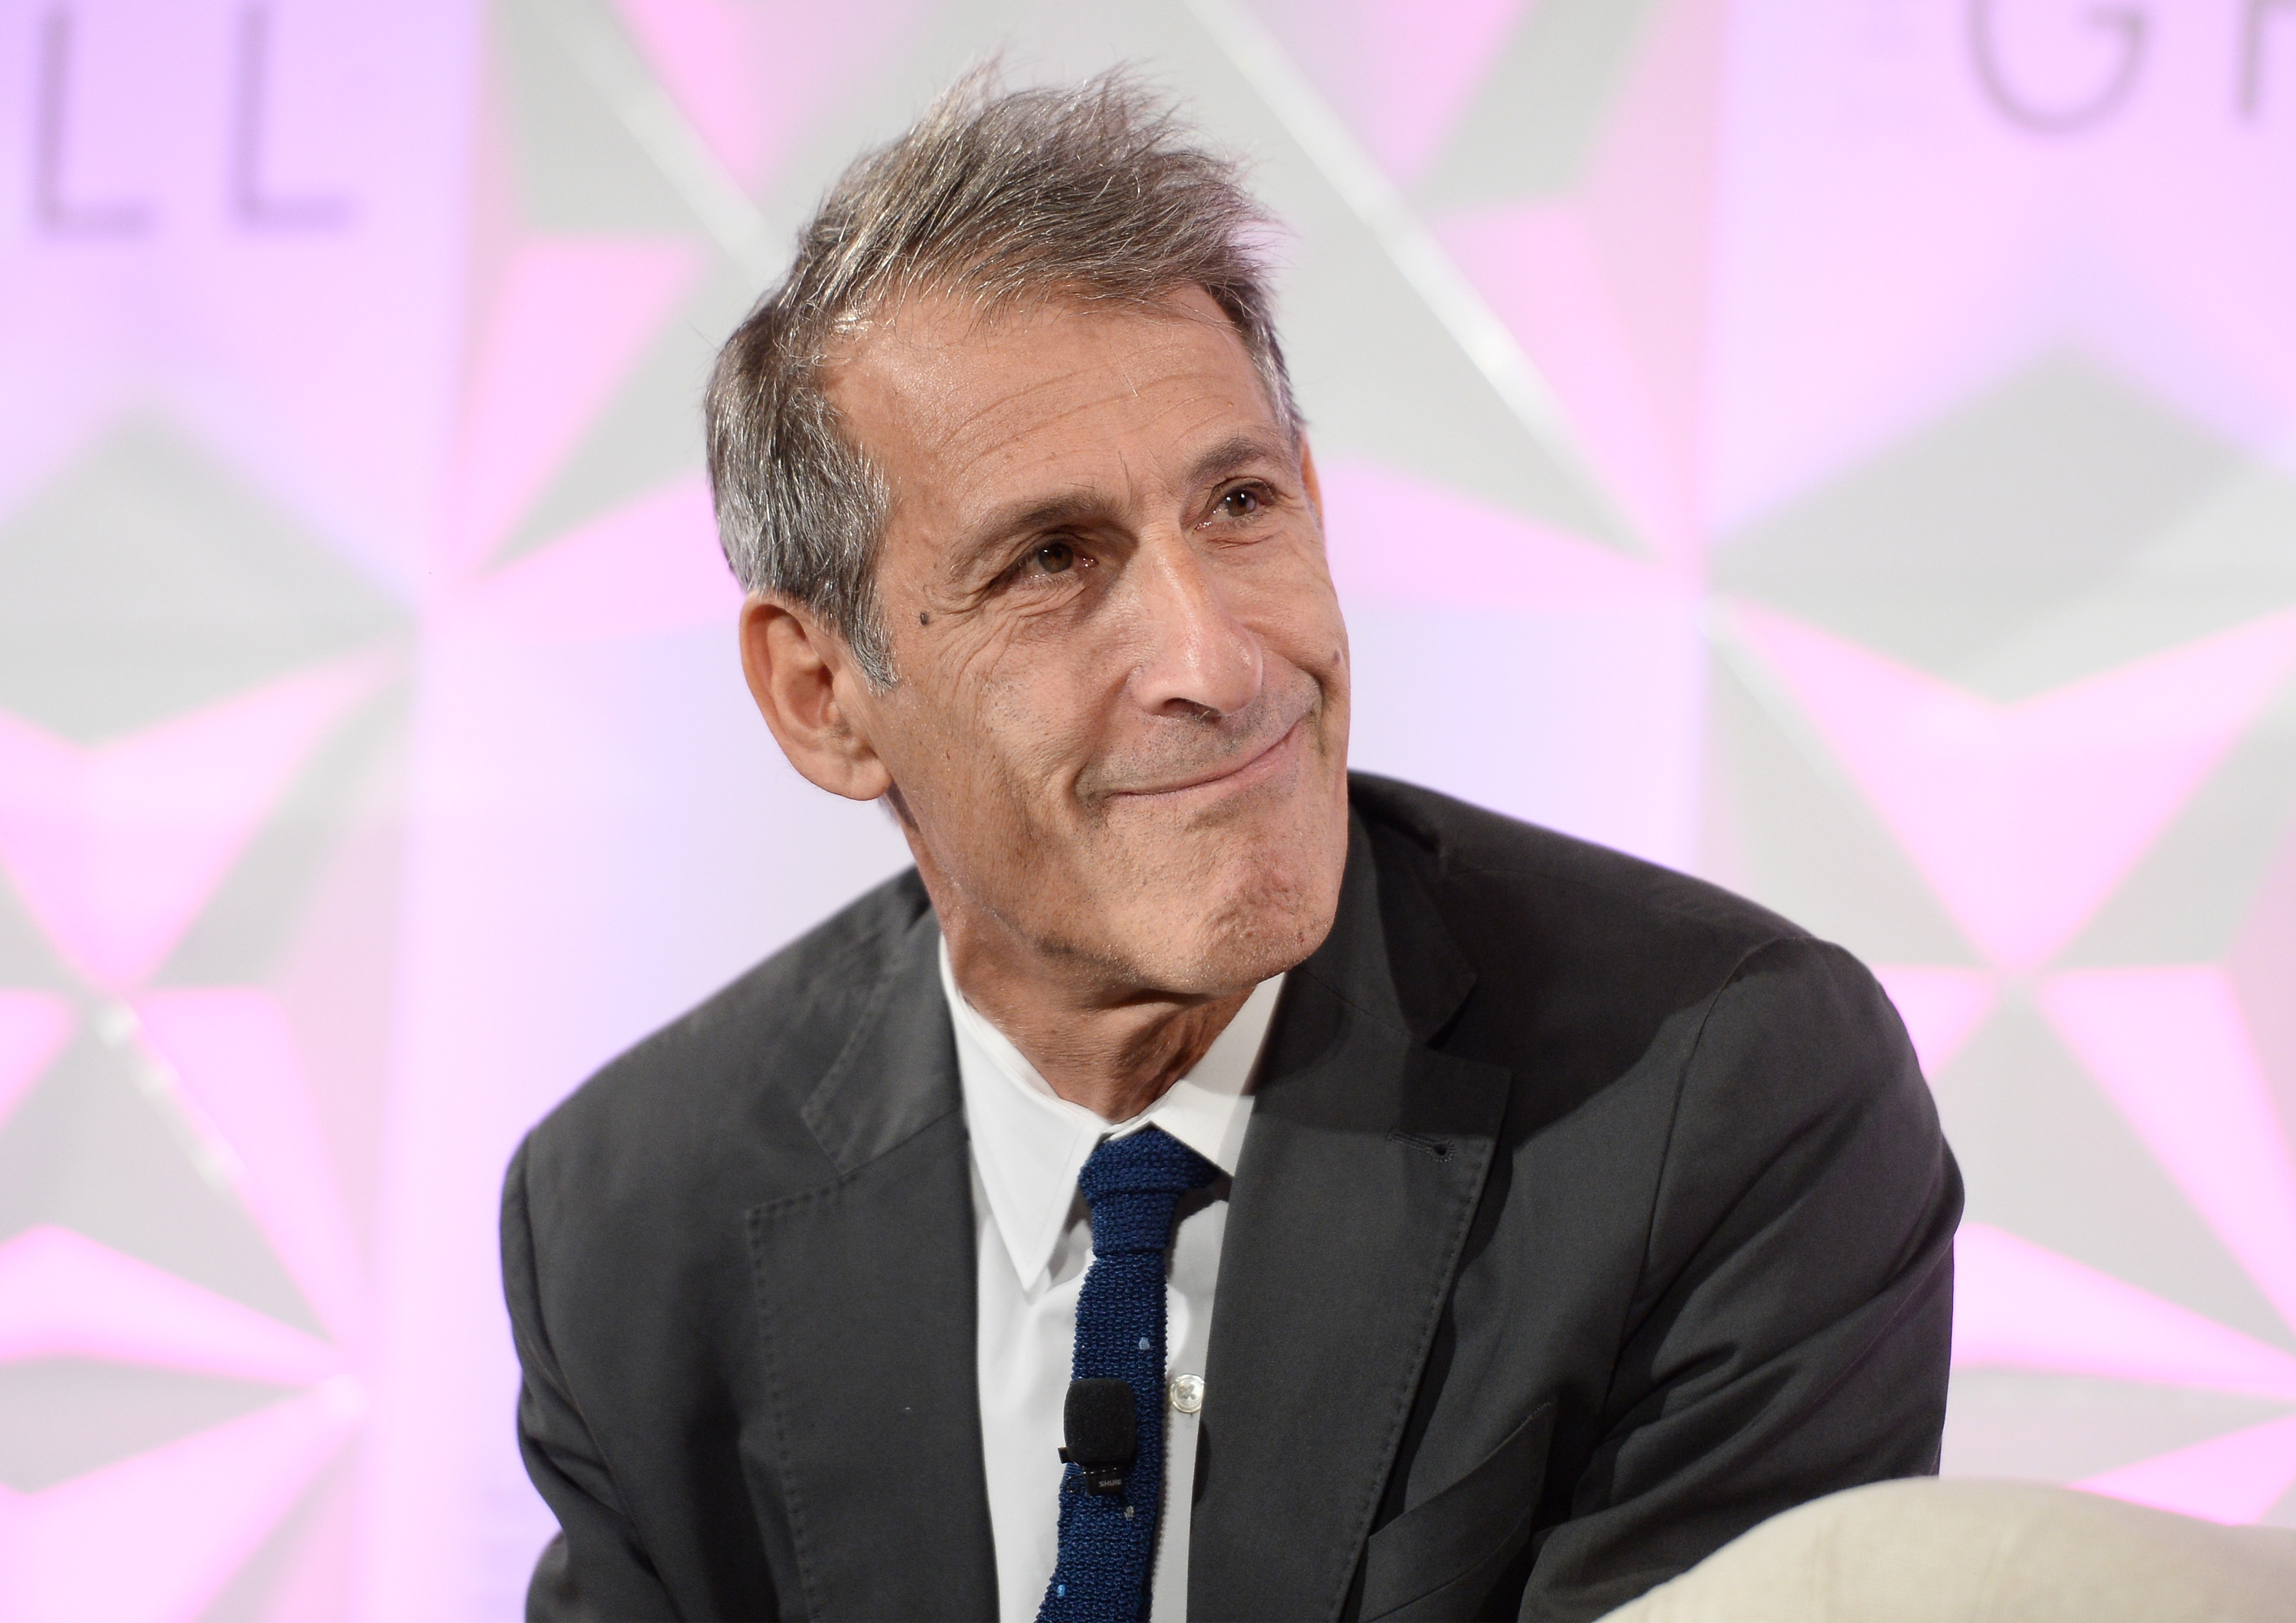 Michael Lynton, CEO of Sony Entertainment, said last month that he's leaving Sony to become chairman of Snap's board full-time.